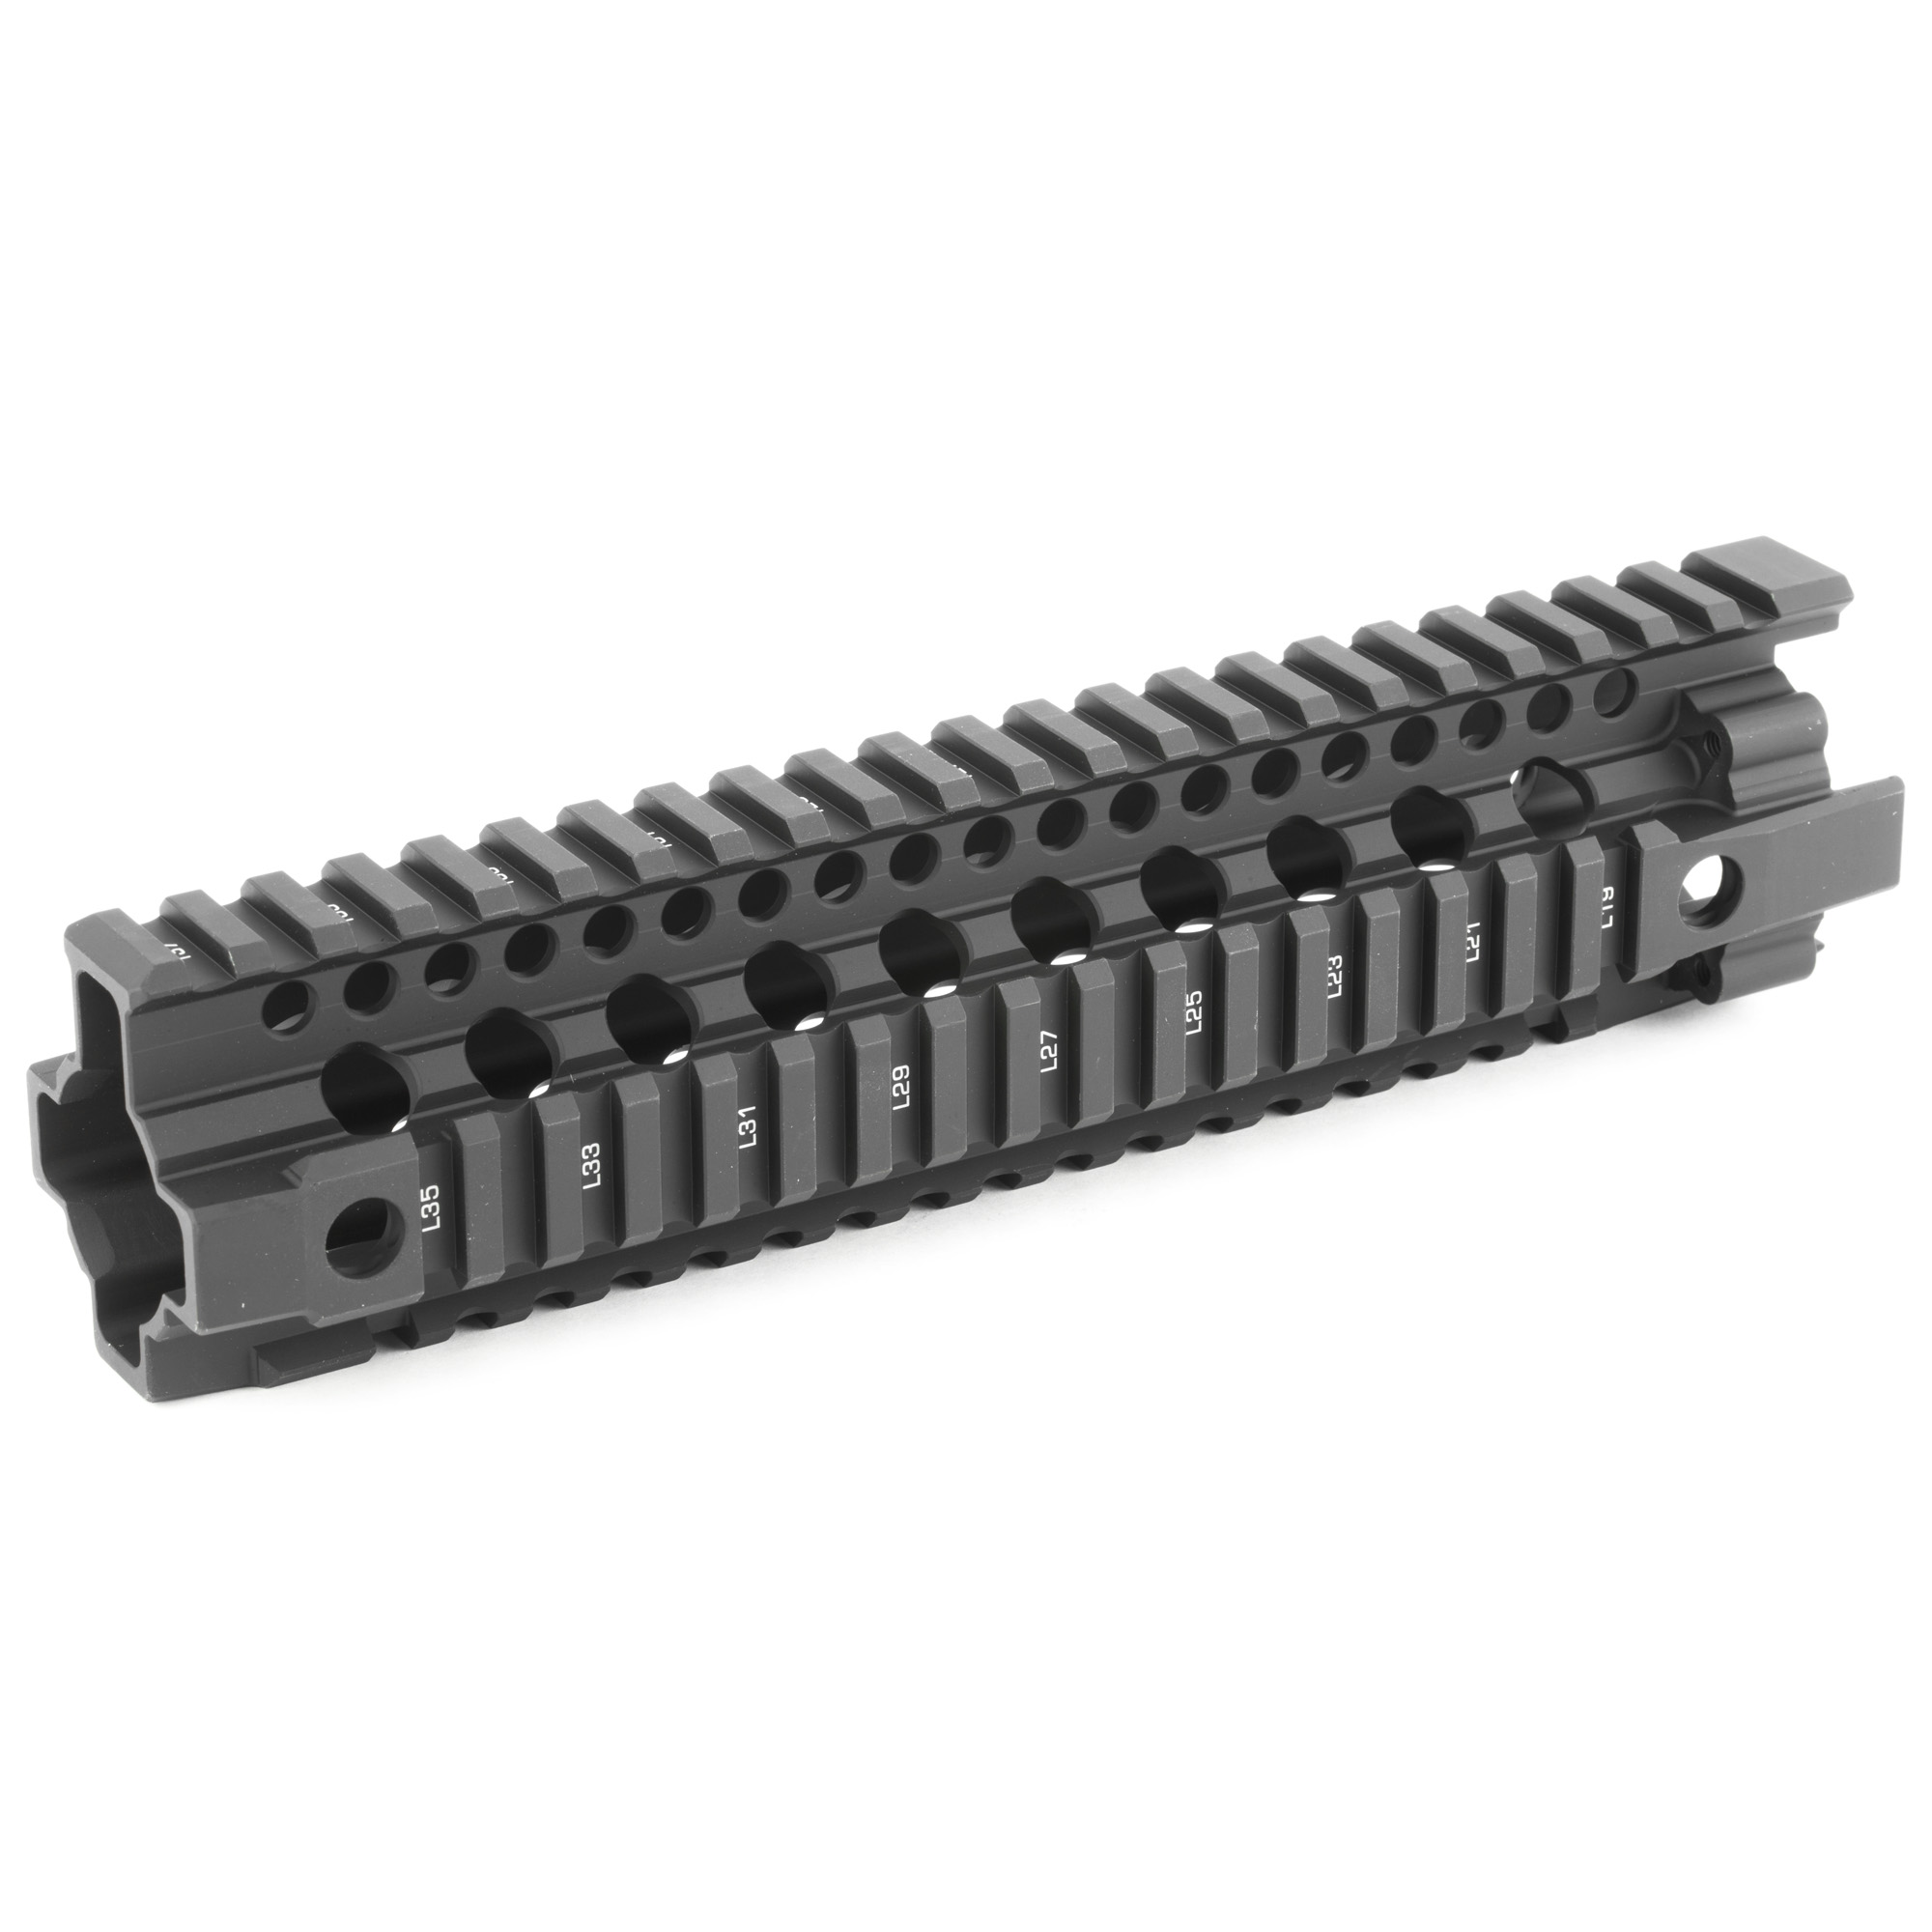 "Daniel Defense's DDM4 9.0 Mid-Length rail features an optimized one-piece"" free-floating architecture. This design results in the ergonomics and proven durability users demand while maintaining the lightweight characteristics they expect from Daniel Defense. The DDM4 Rail's ergonomic design allows operators to maintain better control of the firearm. Limited rotation QD swivel attachment points are located at the front and rear of both sides of this rail system for tangle-free attachment for slings. A continuous picatinny rail on top provides the rail real estate for sights and accessories. DDM4 Rail 9.0 is compatible with low profile gas blocks on barrels 10"" and longer with gas systems at Mid-length and shorter. Rail System includes all required hardware (Barrel Nut"" Bolt-Up Plate"" & Screws)"" tools (Barrel Nut Wrench & Allen Wrench)"" and 3 Daniel Defense Rail Ladders made of high temperature resistant Santoprene."